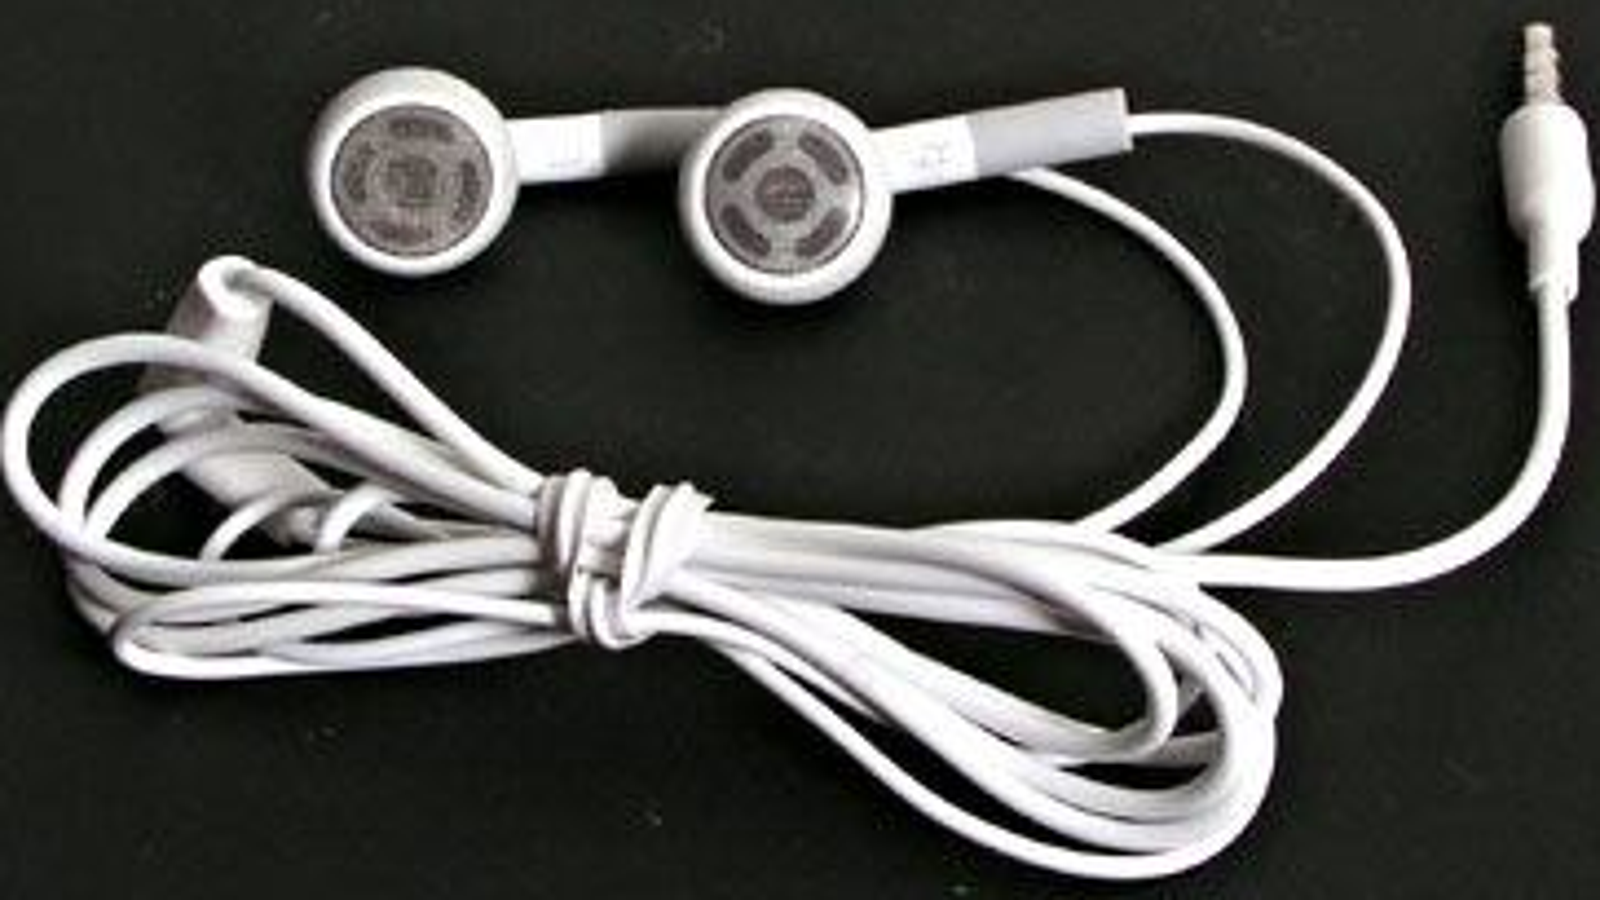 Panasonic exercise earbuds - Do You Use Apple Earbuds?